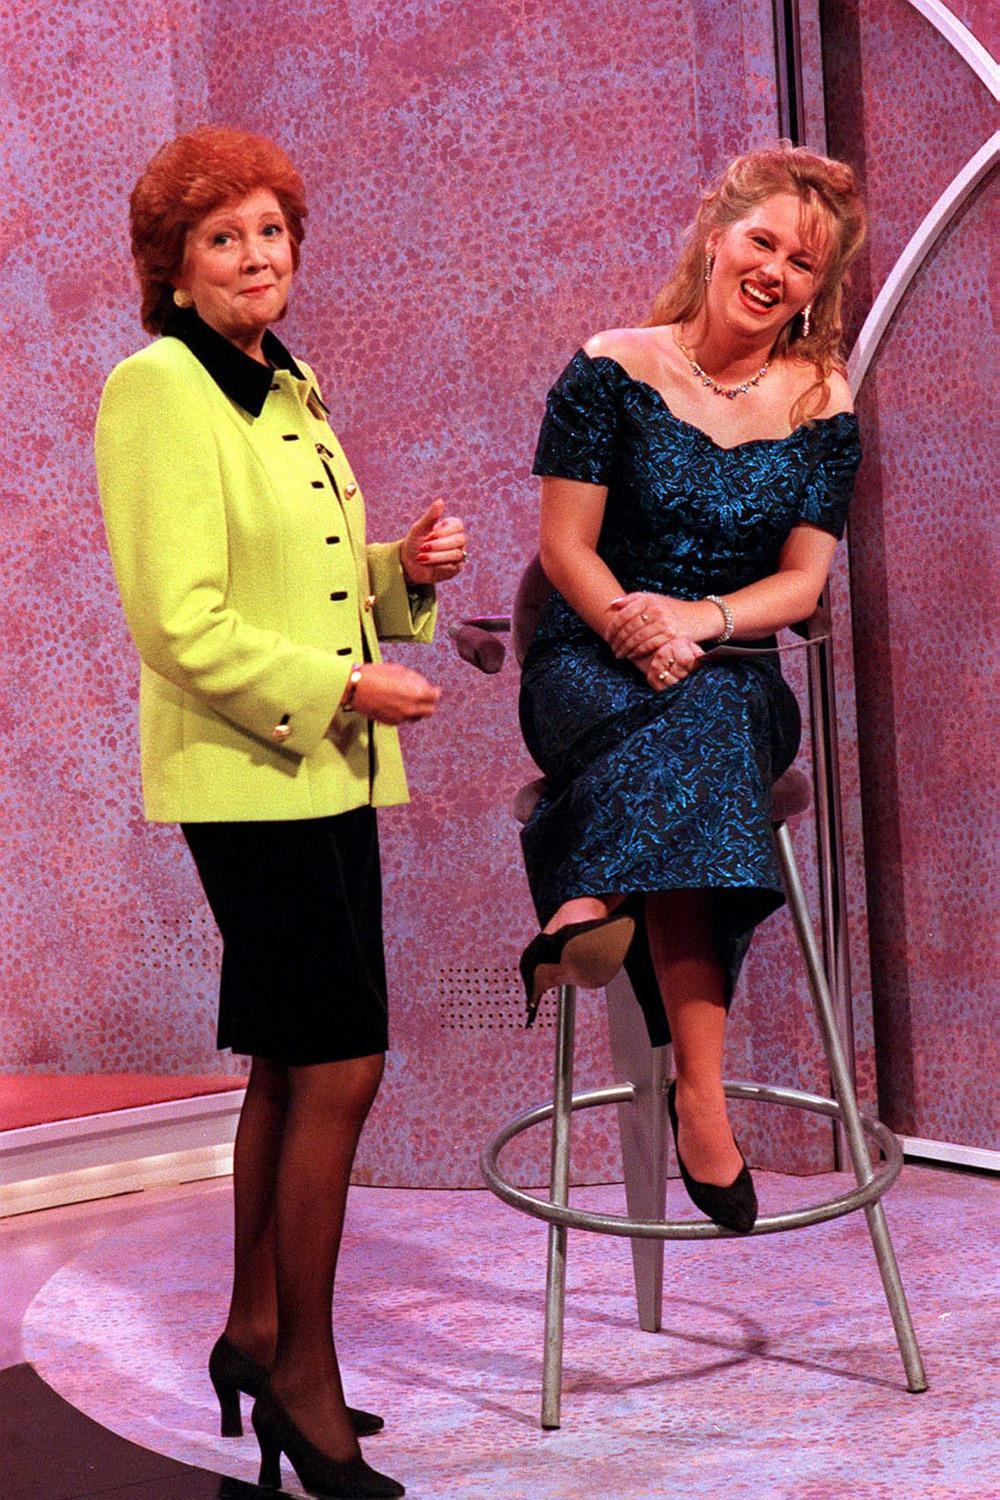 Hands up if Blind Date was your fave Saturday night show growing up? #RIPCilla http://t.co/hwkoWpZnmB http://t.co/sllbBe3Q28